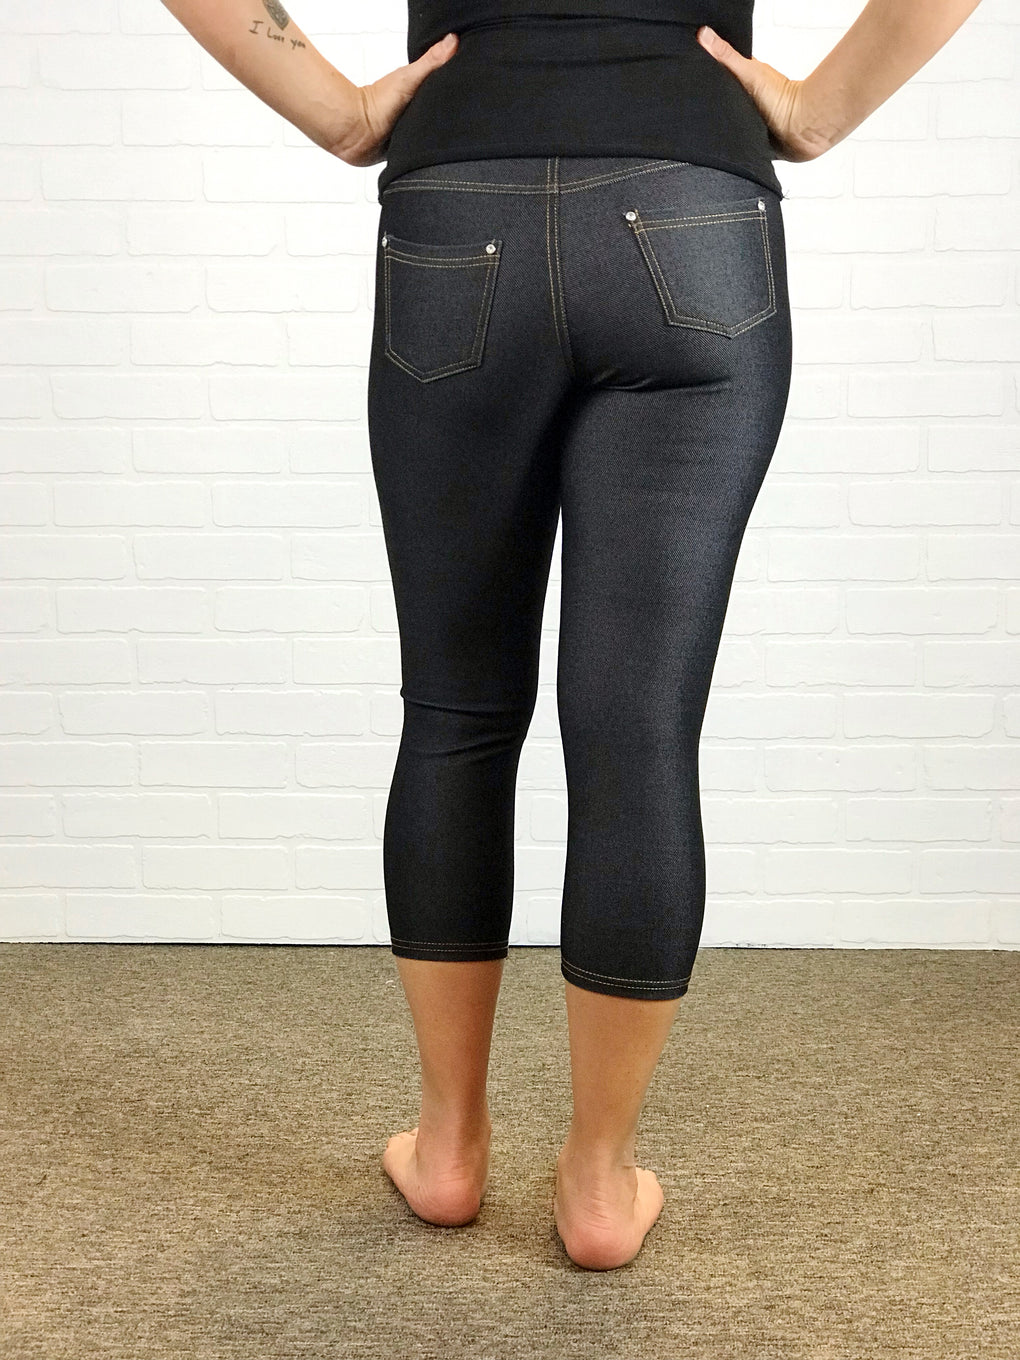 Jean Stretch Capris - Black